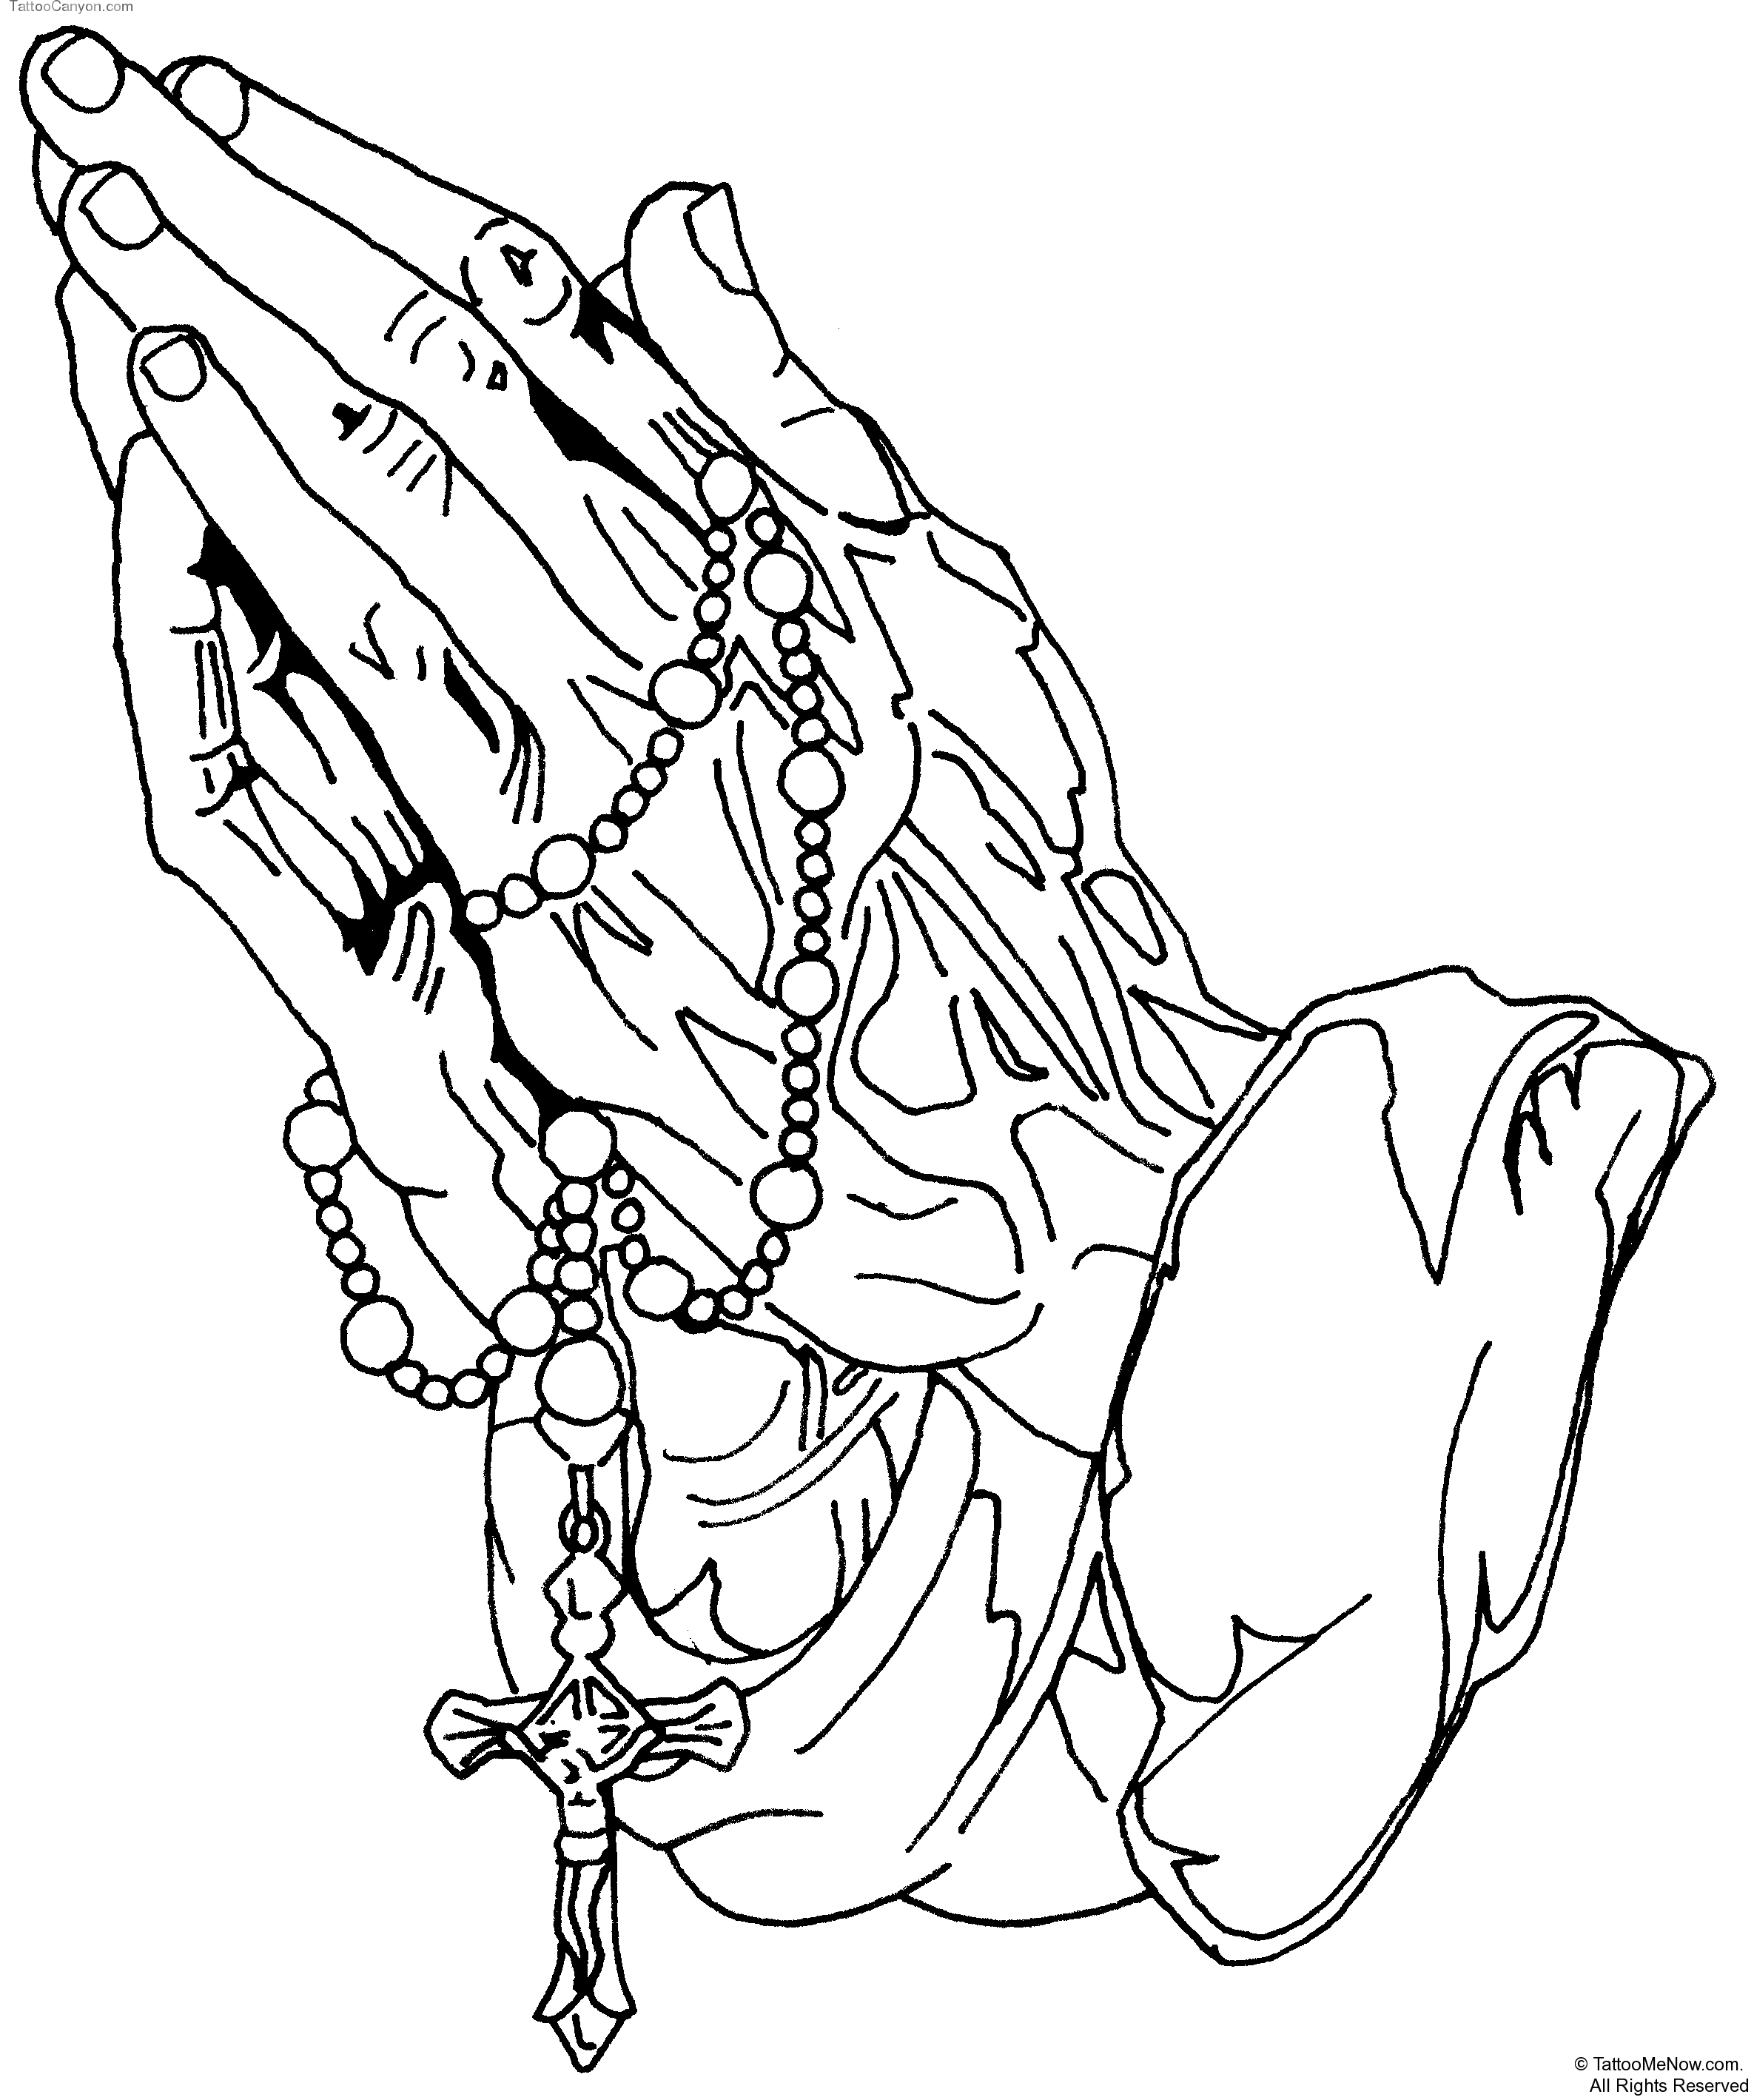 2370x2837 Hope Heart Tattoo Coloring Page Cool Tattoo Coloring Pages